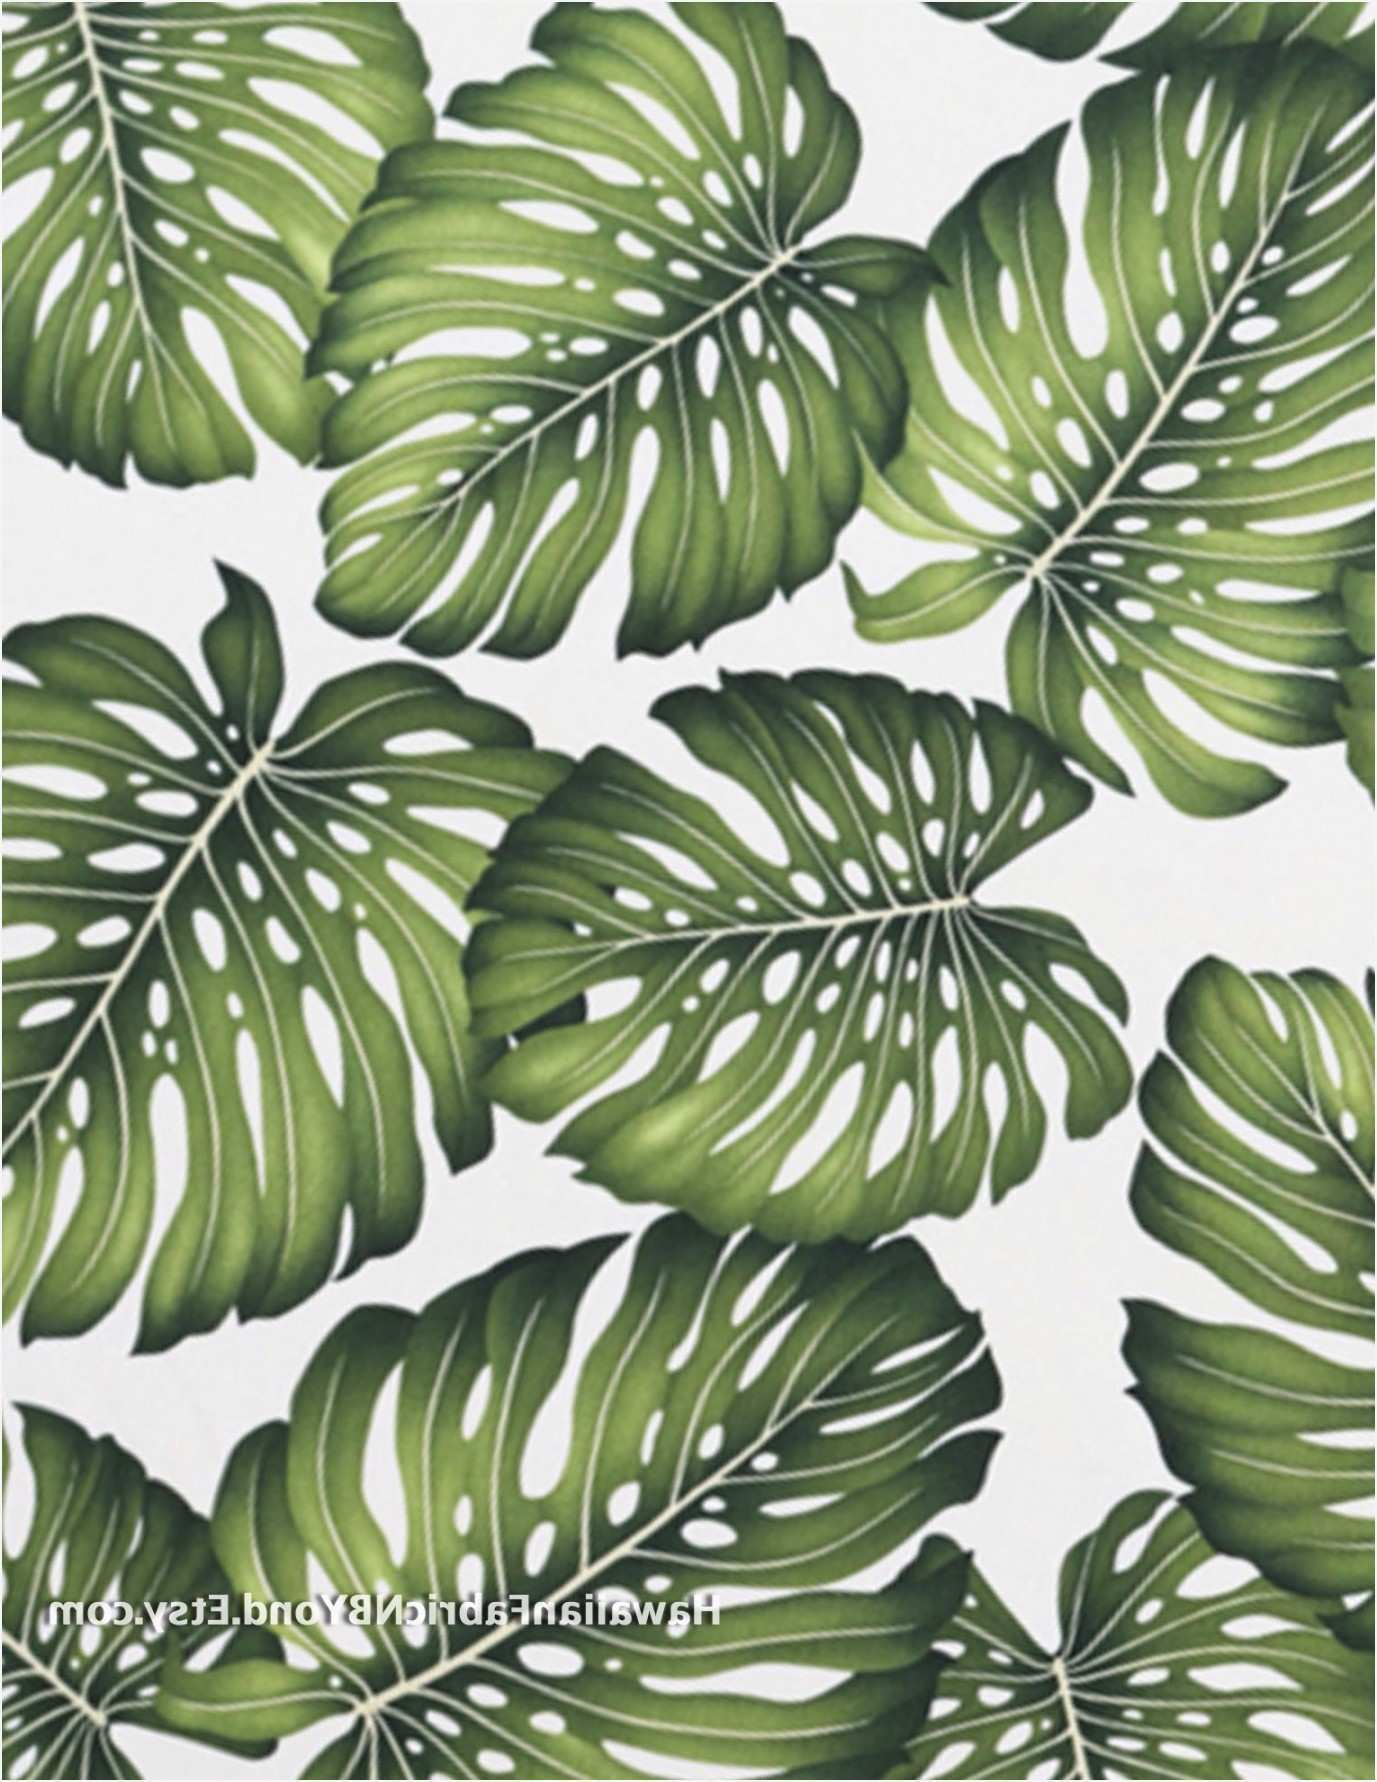 Tropical Upholstery Fabric Inspirational Tropical Leaf Fabric Print